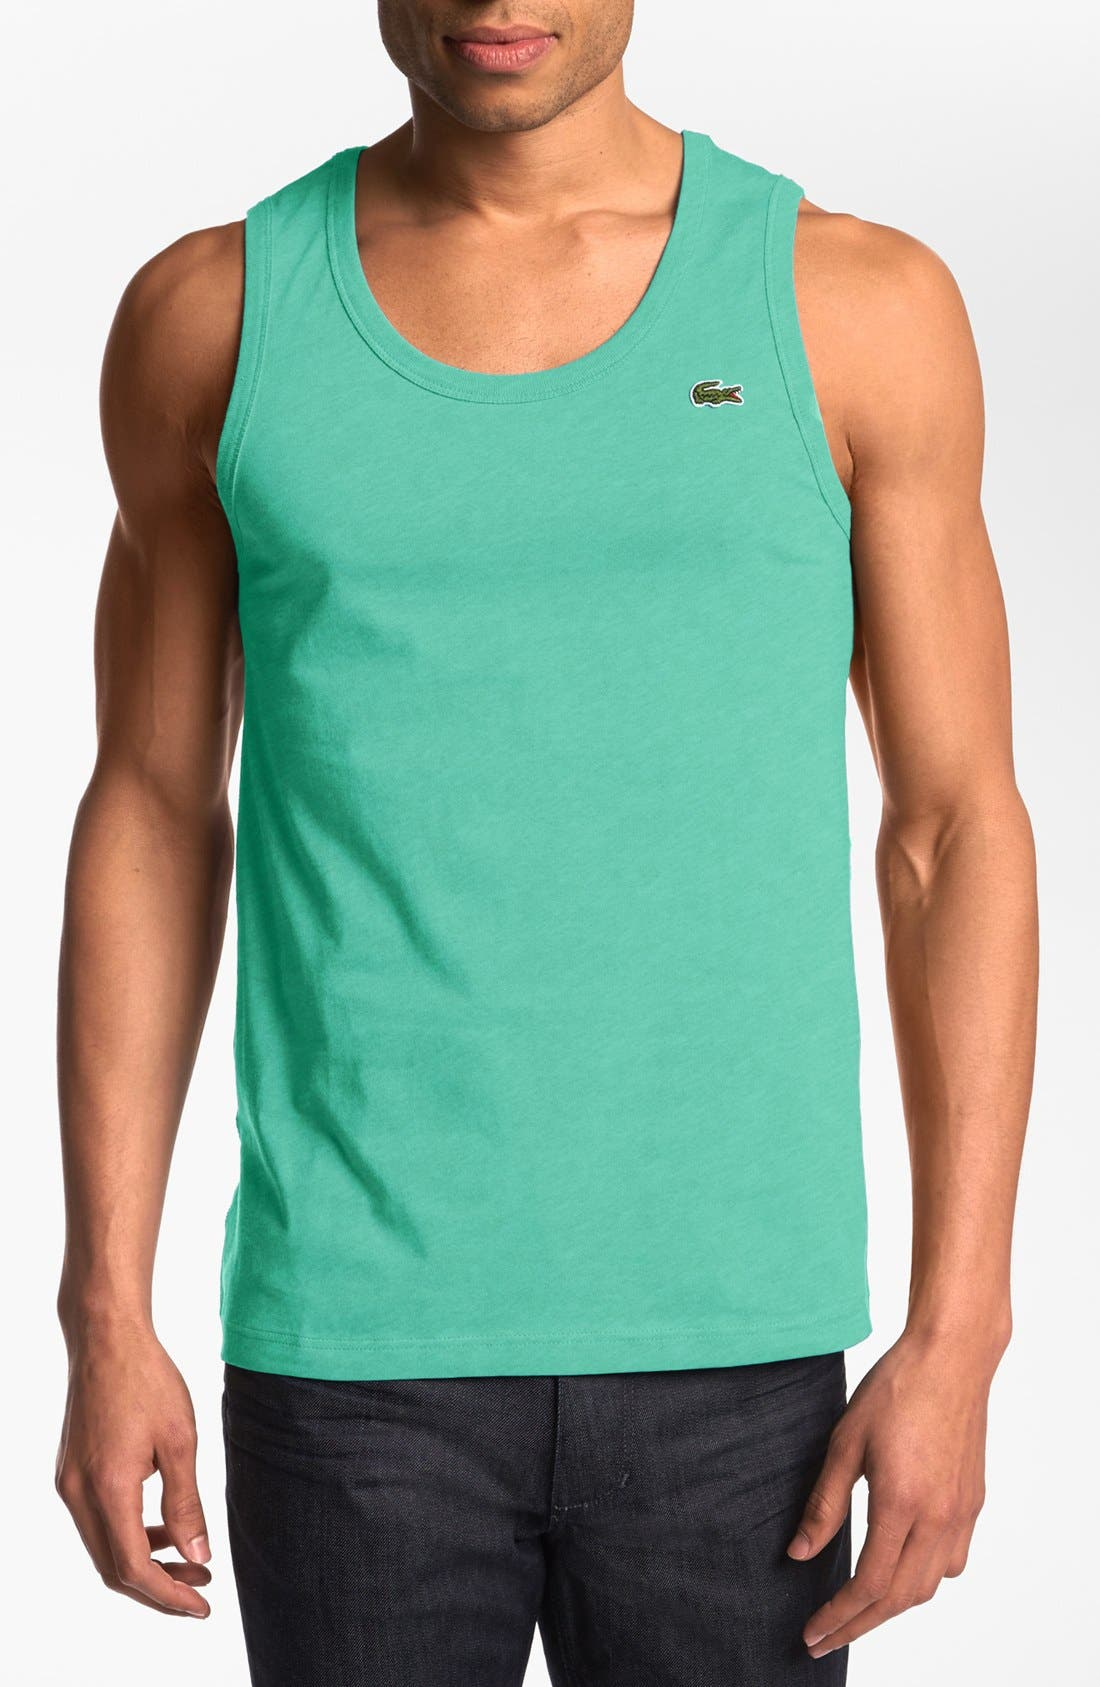 Main Image - Lacoste Tank Top